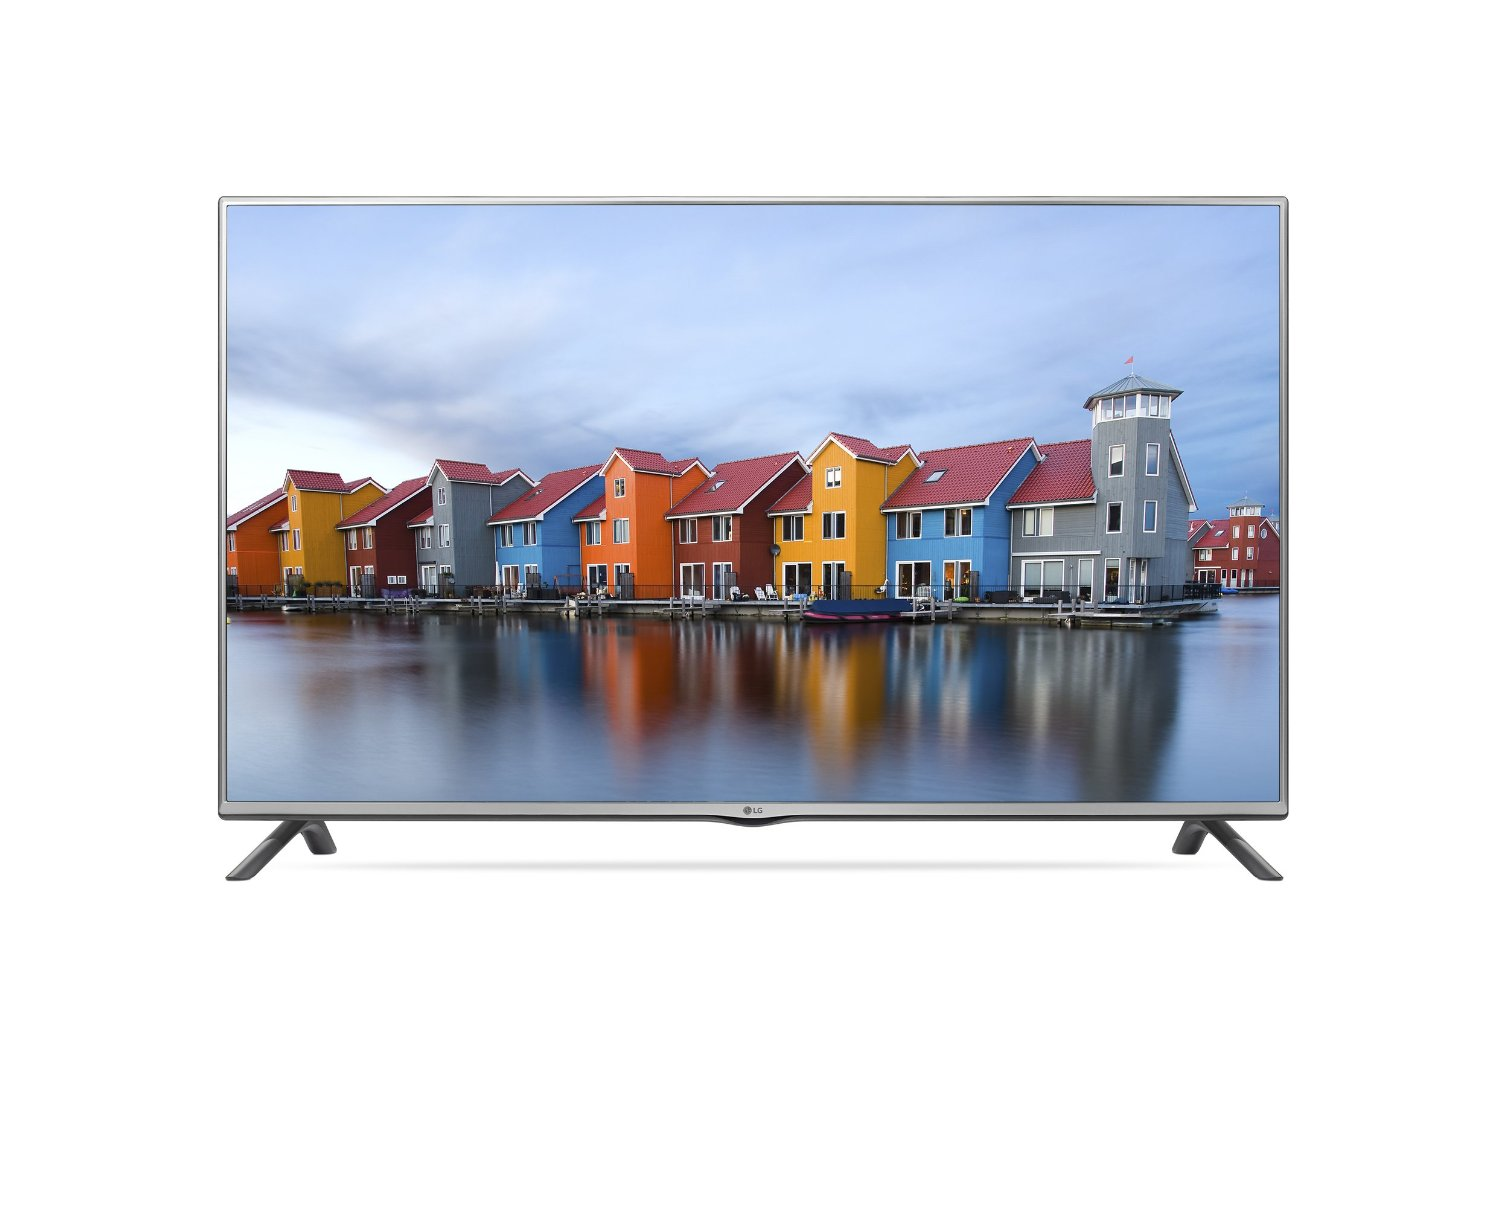 television as gift ideas for TV addicted Wife